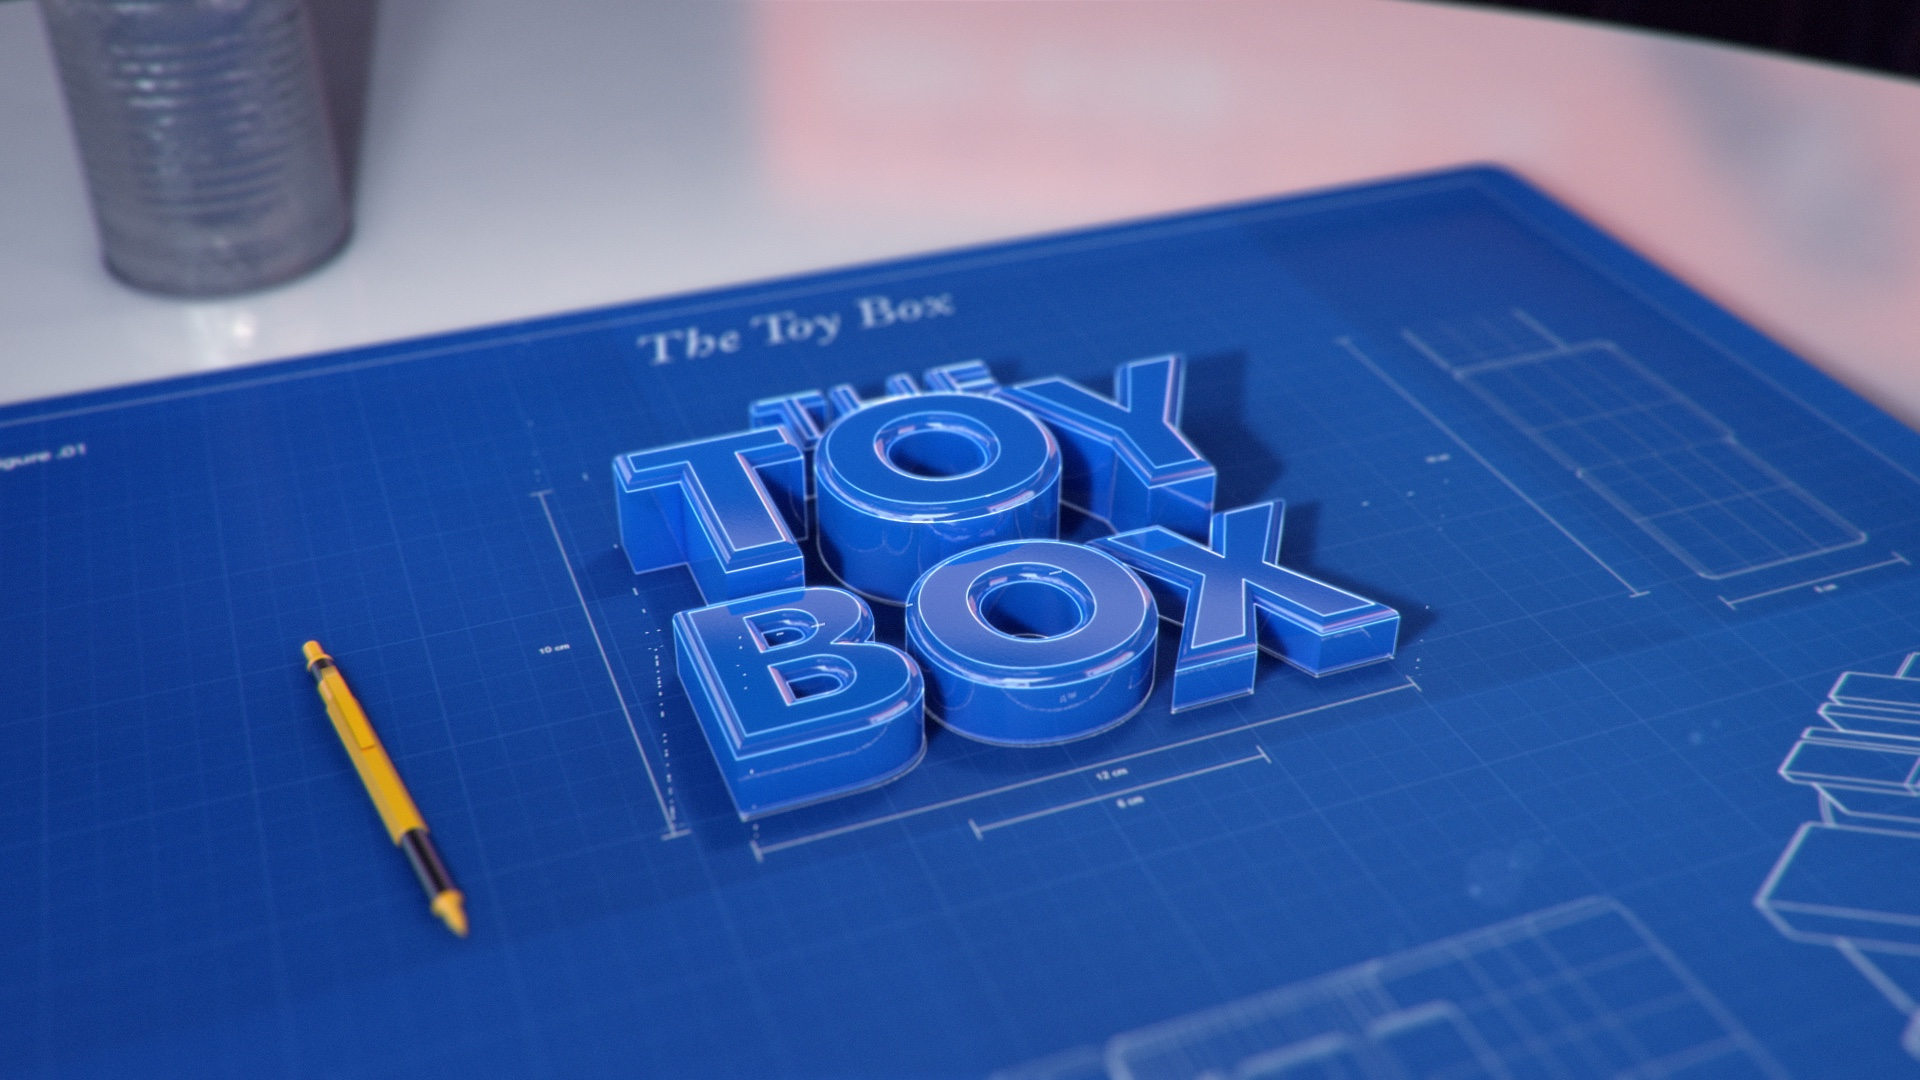 "<a href=""/the-toy-box"">The Toy Box</a>"